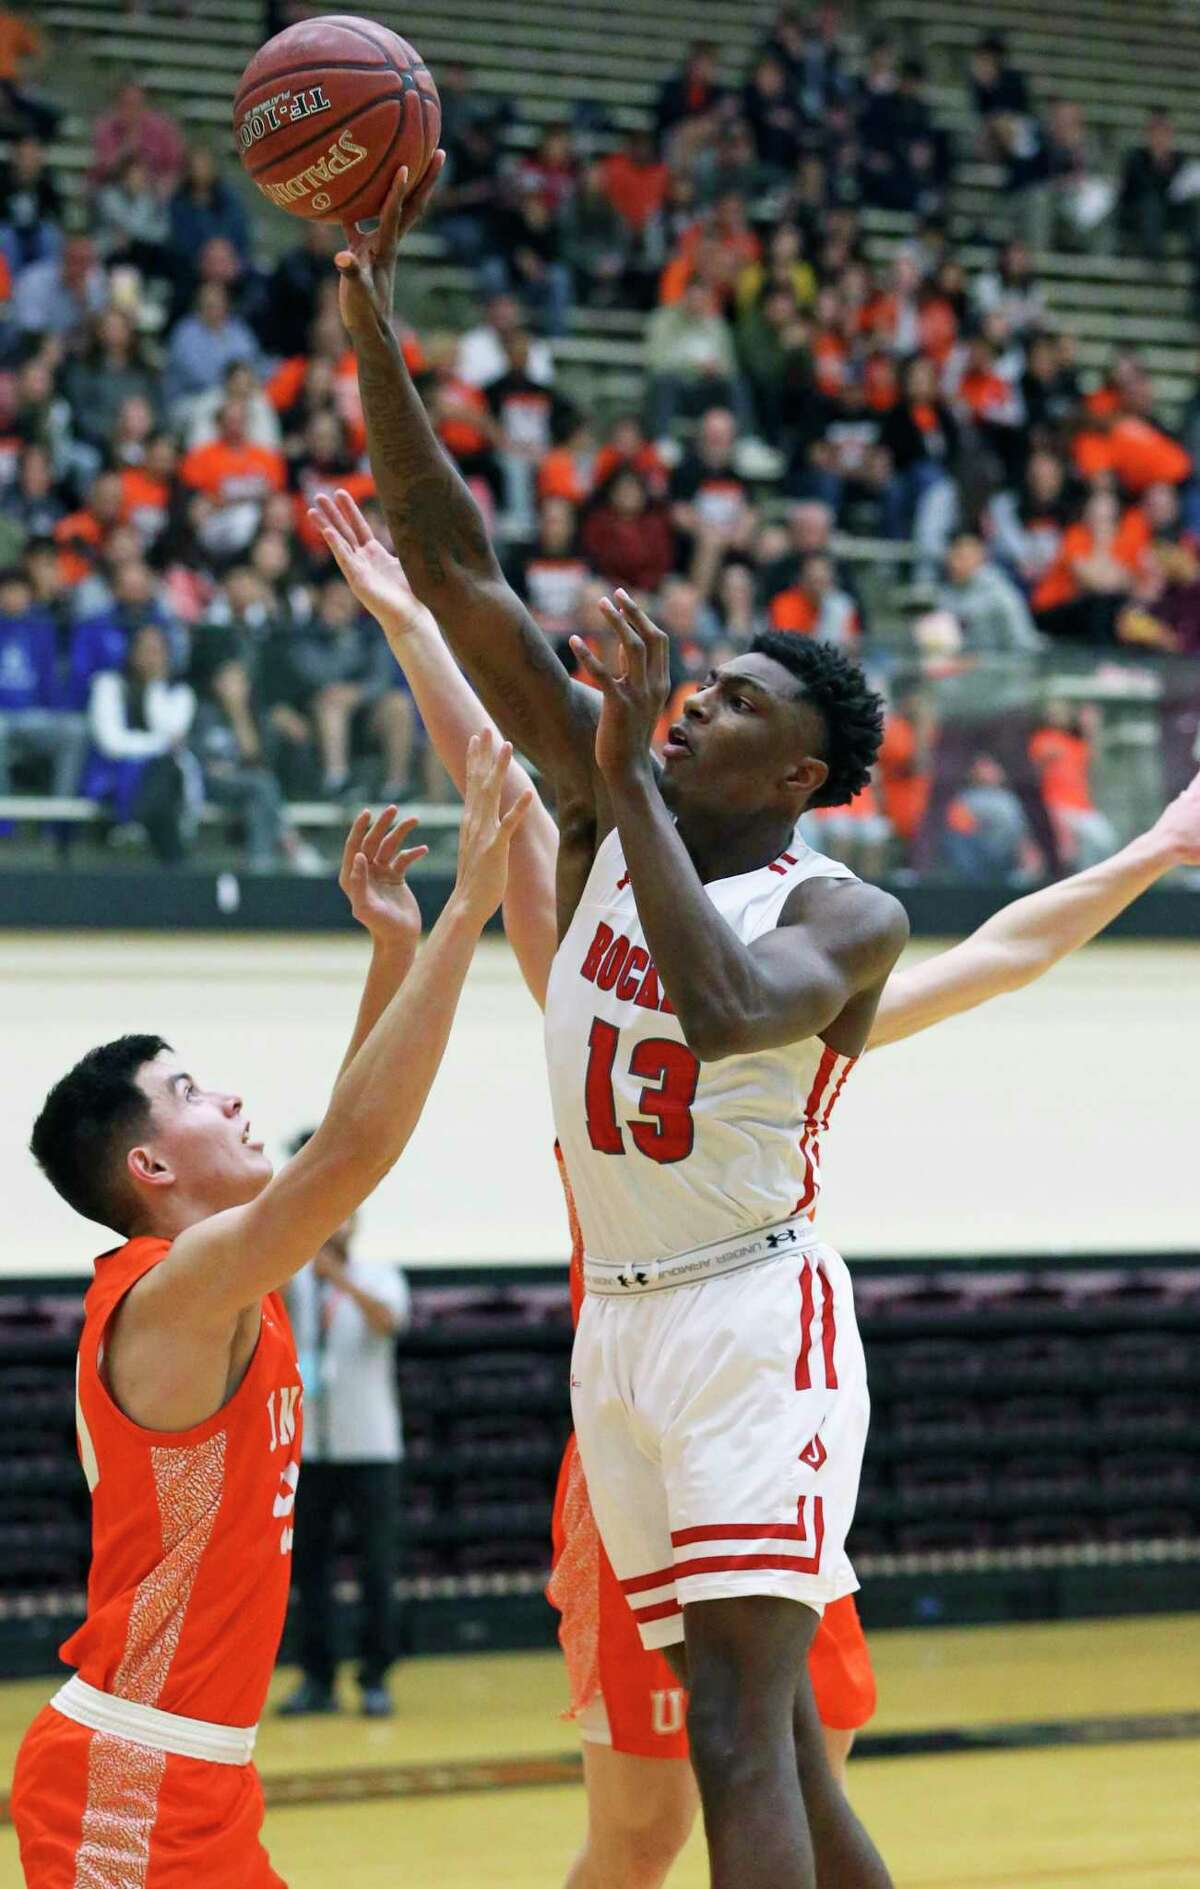 Rocket forward Davion Wilson tips back an inbounds pass to teammate MIke Chandler for an open layiup as Judson plays United in Class 5A regional semifinal basketball at Littleton Gym on Feb. 6, 2020.